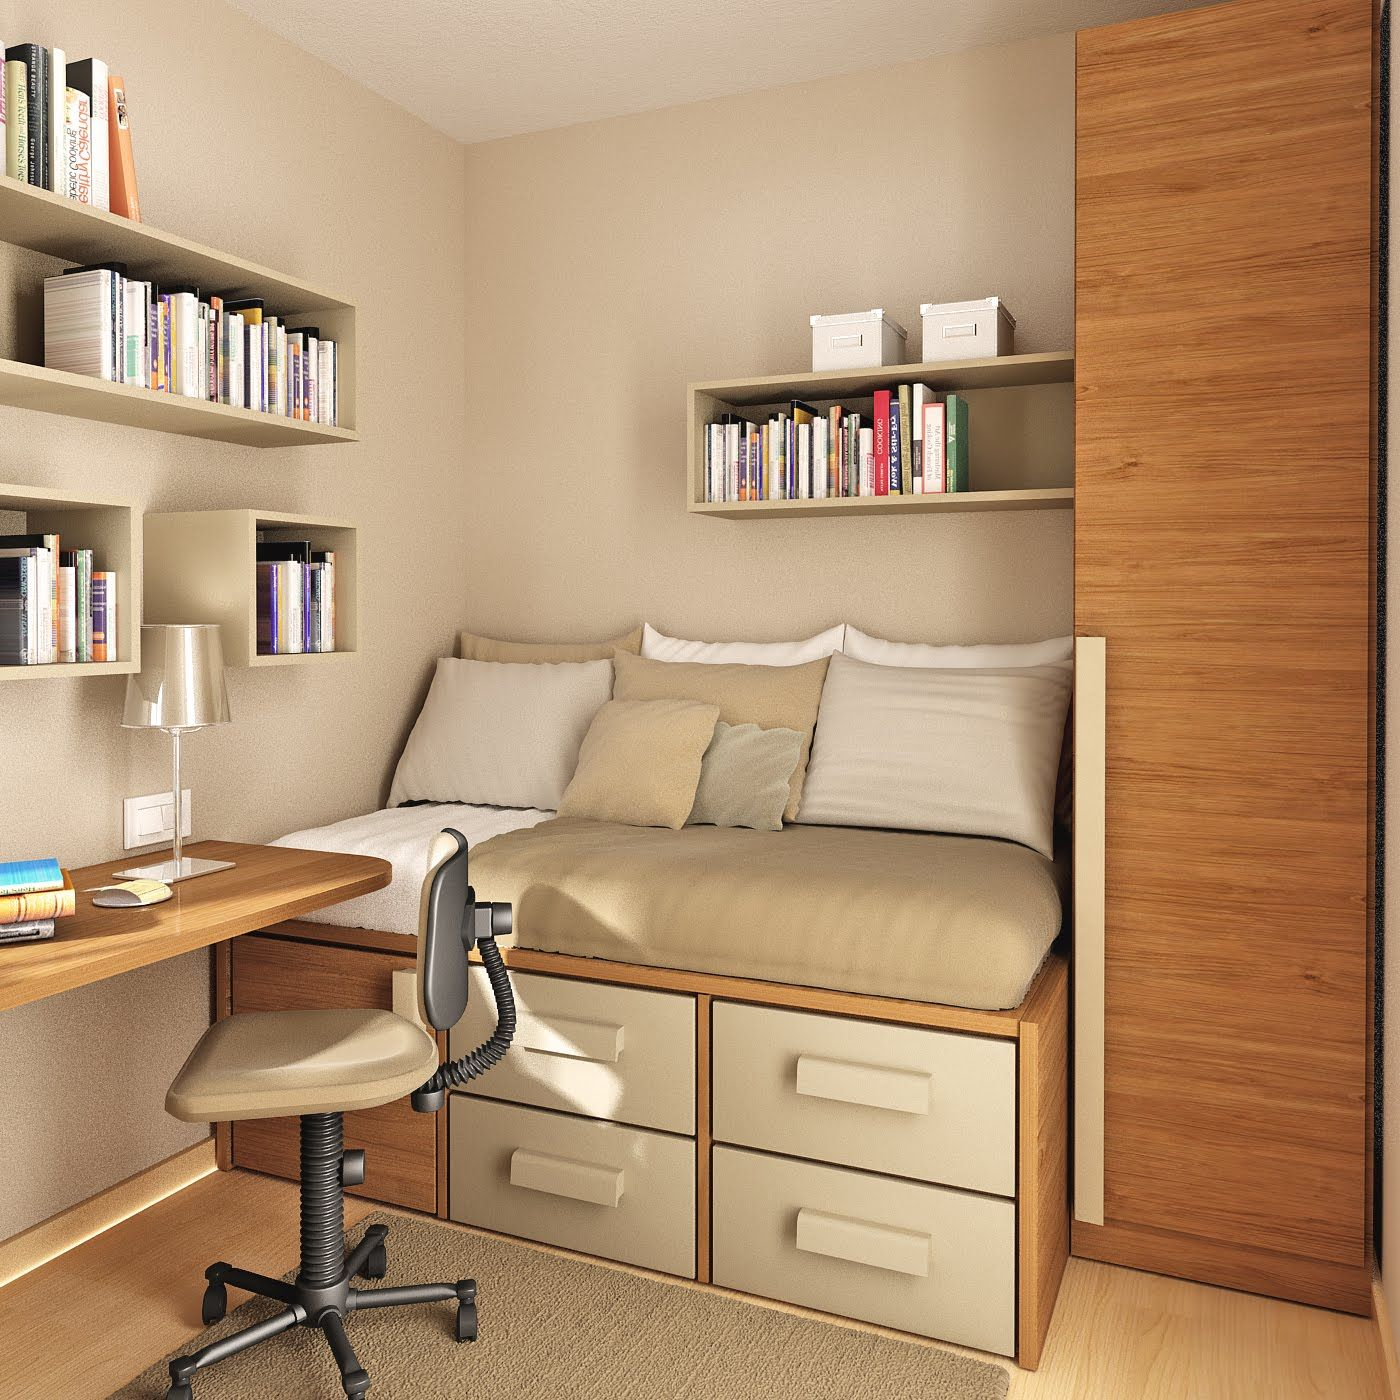 Study room design ideas singapore google search boy 39 s Study room ideas